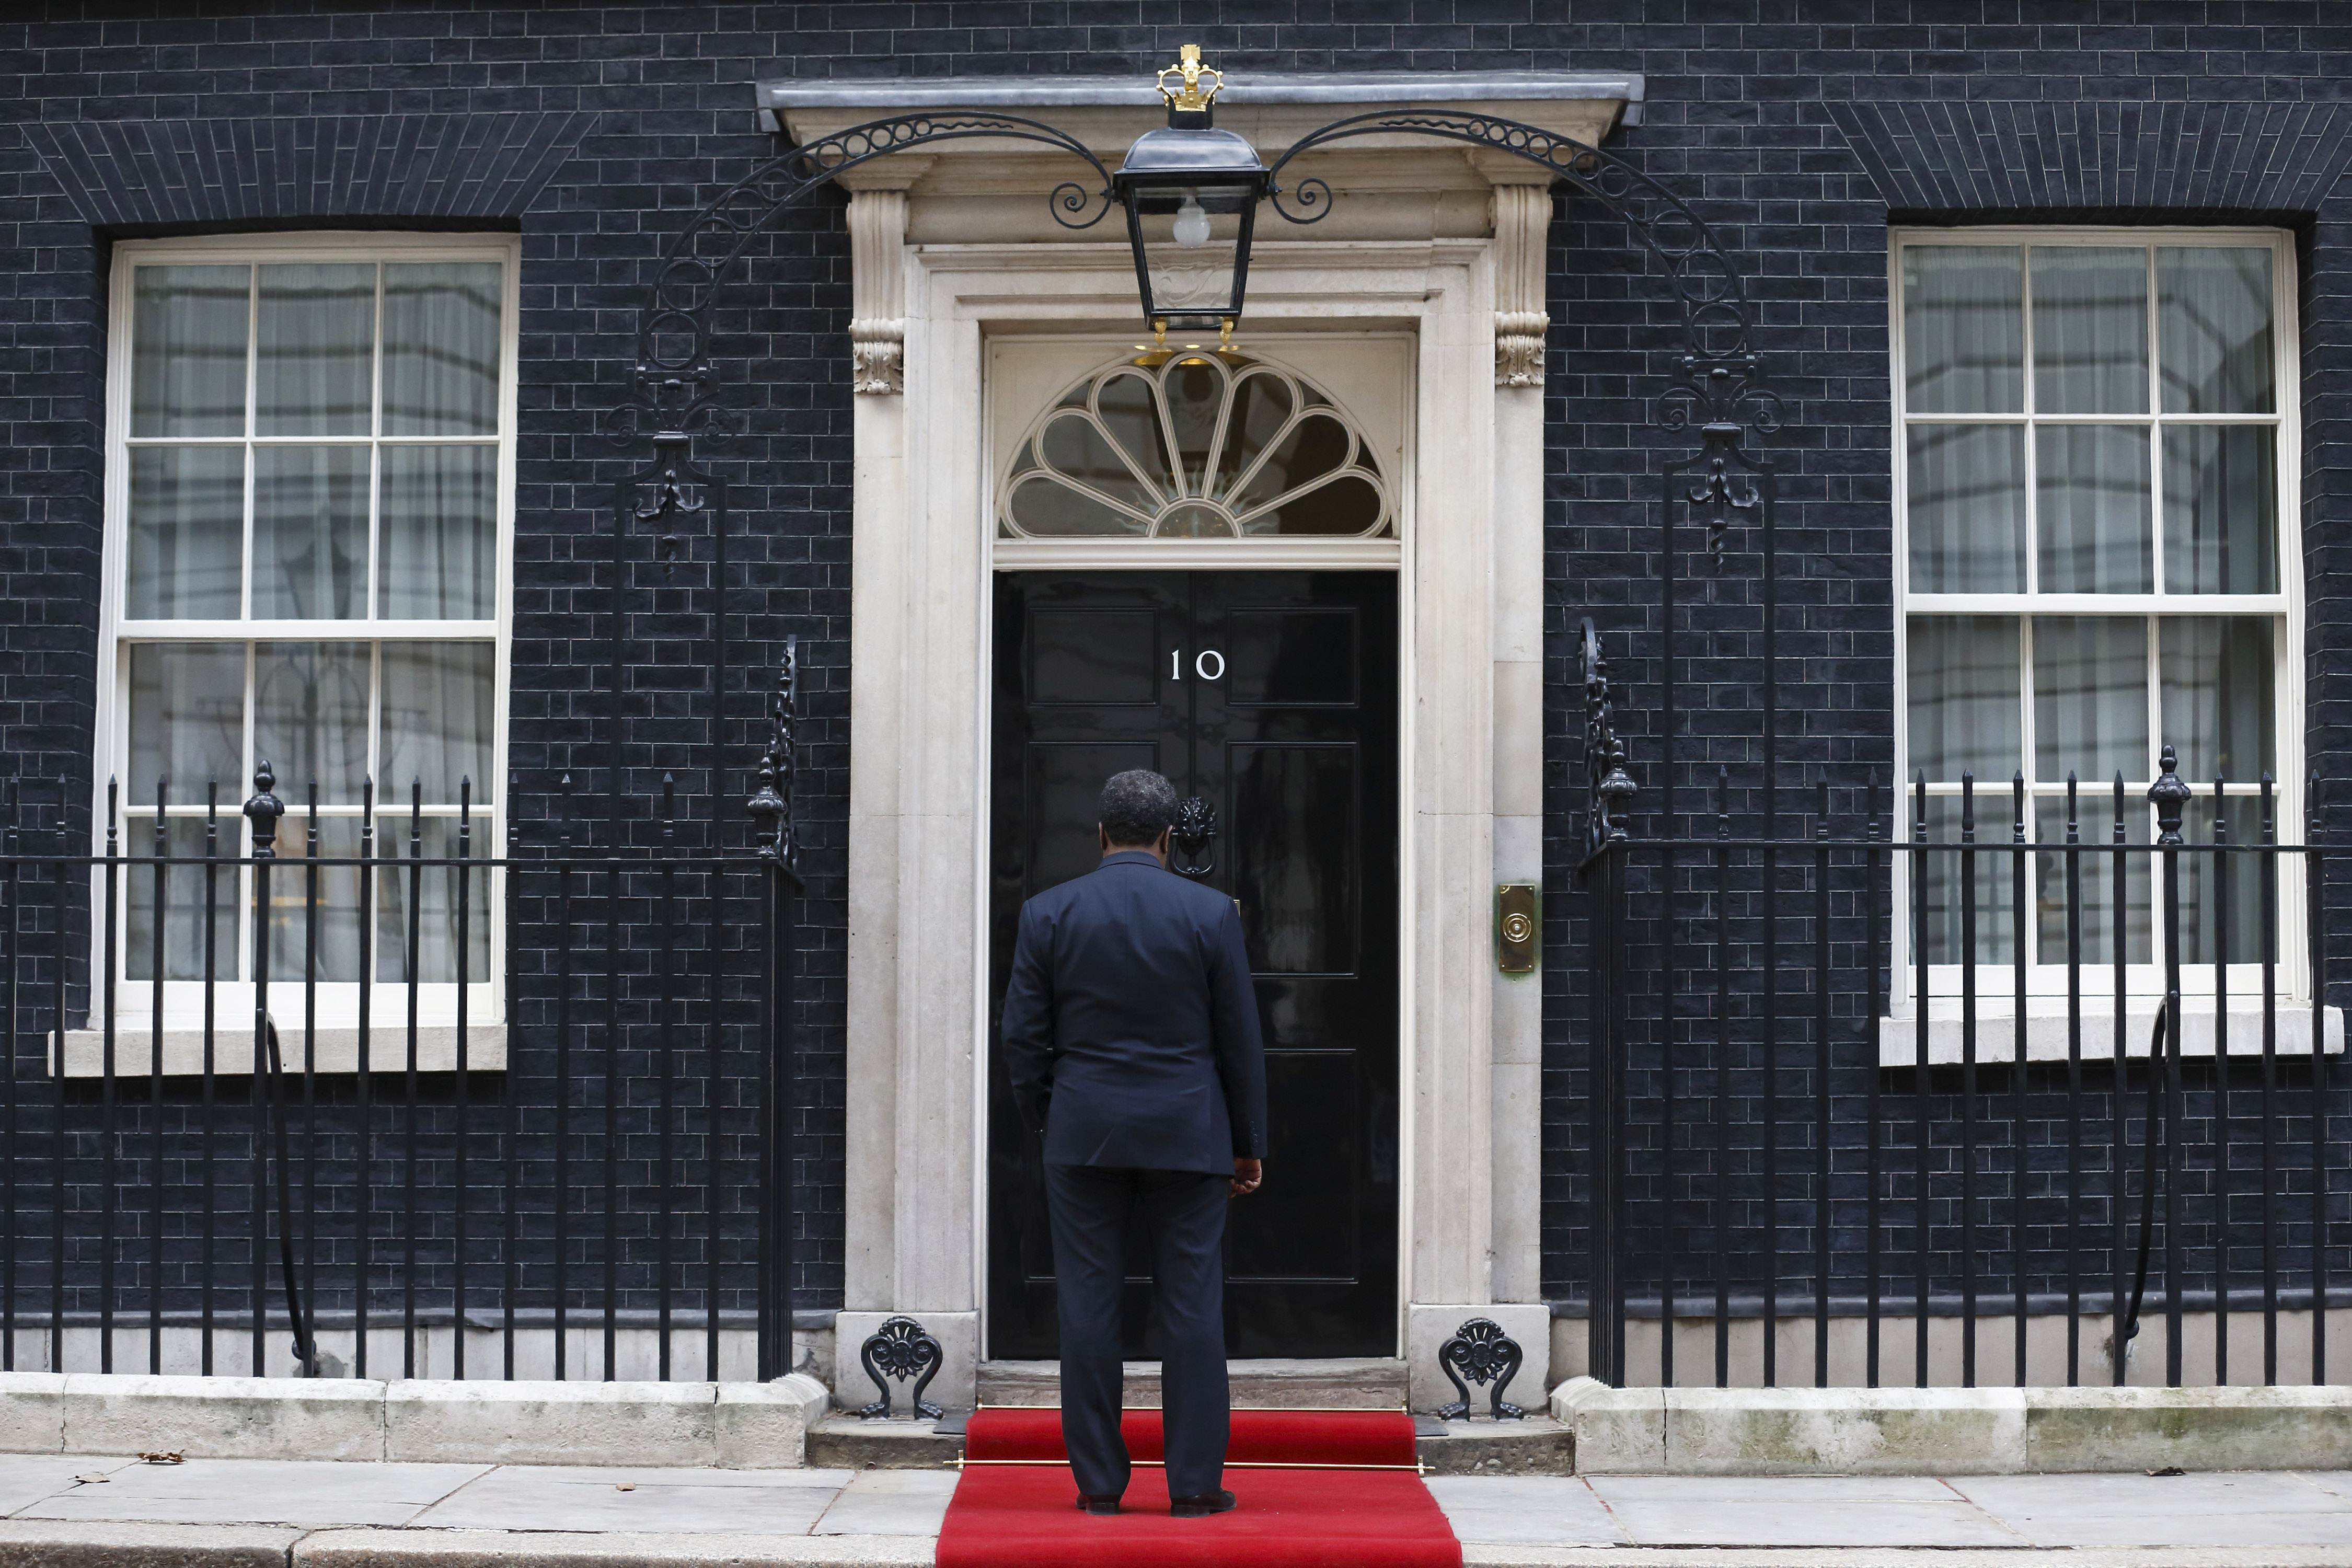 TOPSHOTS Somali President Hassan Sheikh Mohamud waits outside the door of 10 Downing Street in London, on February 4, 2013, as he arrives for a meeting with British Prime Minister David Cameron. AFP PHOTO / JUSTIN TALLIS